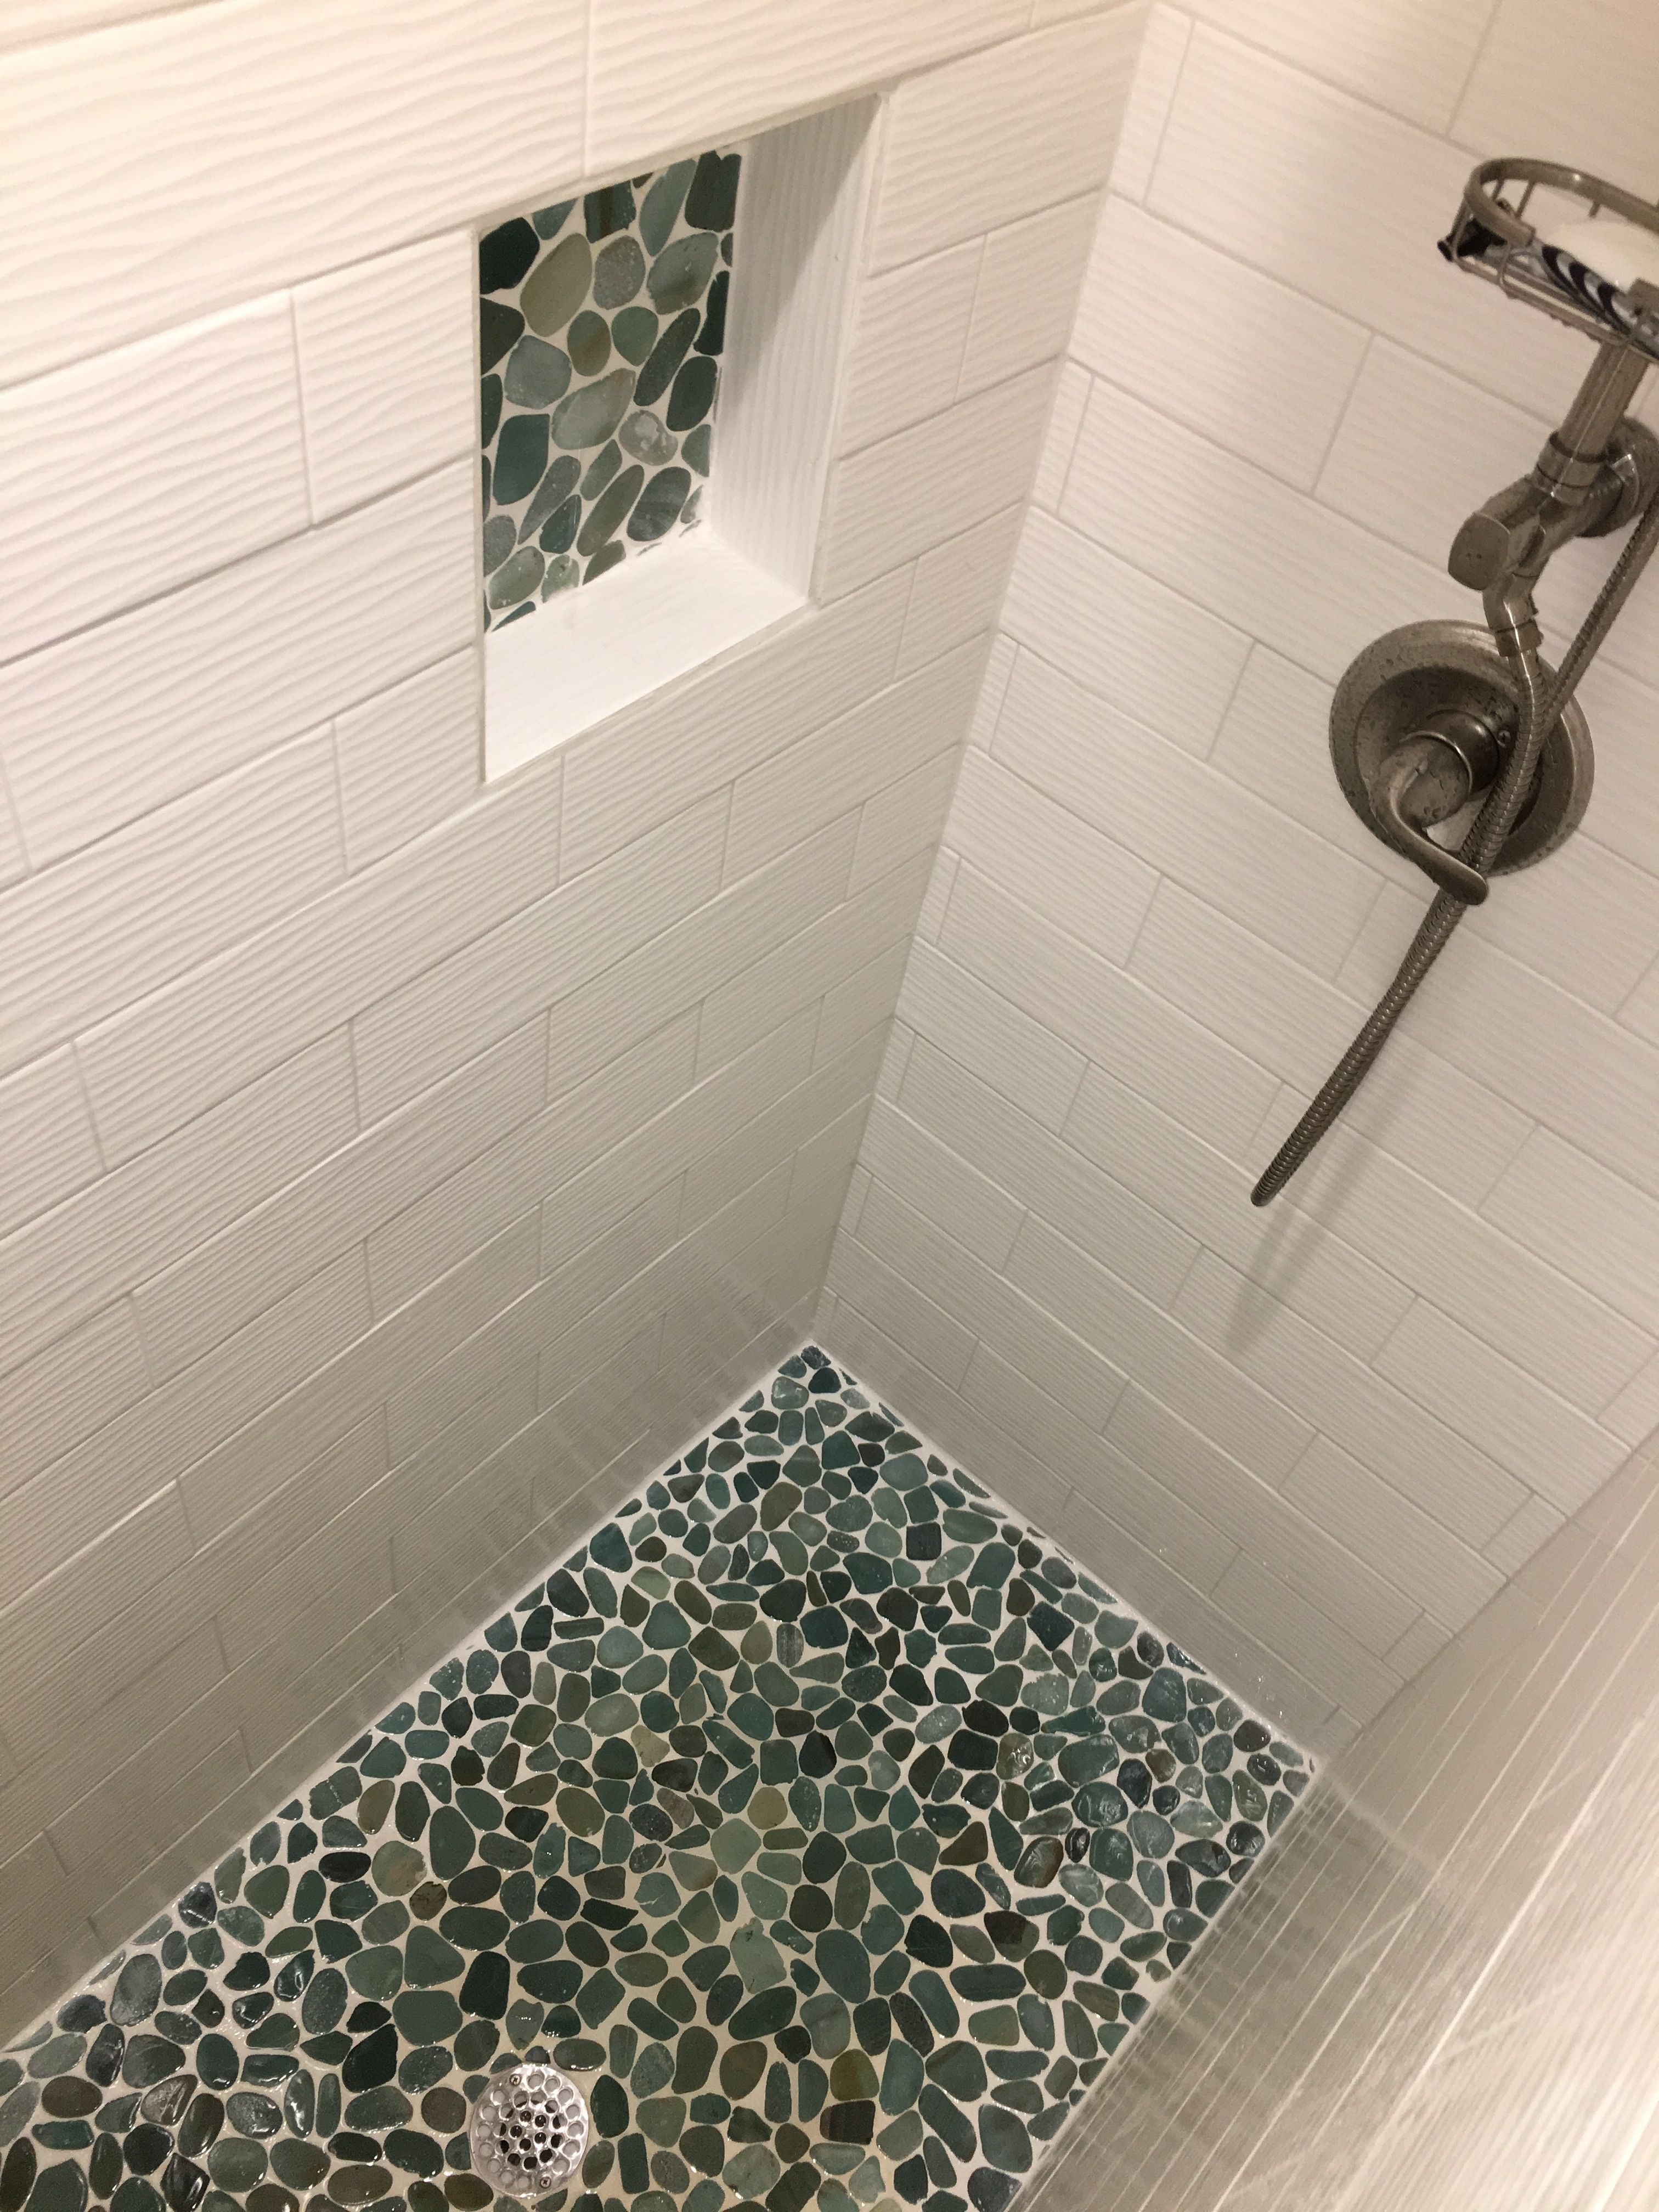 Gorgeous Pop Of Color On The Shower Floor And In The Niche Using Sliced Sea Green Pebble Tile Https Www Pebbl Shower Floor Shower Tile Bathroom Shower Walls